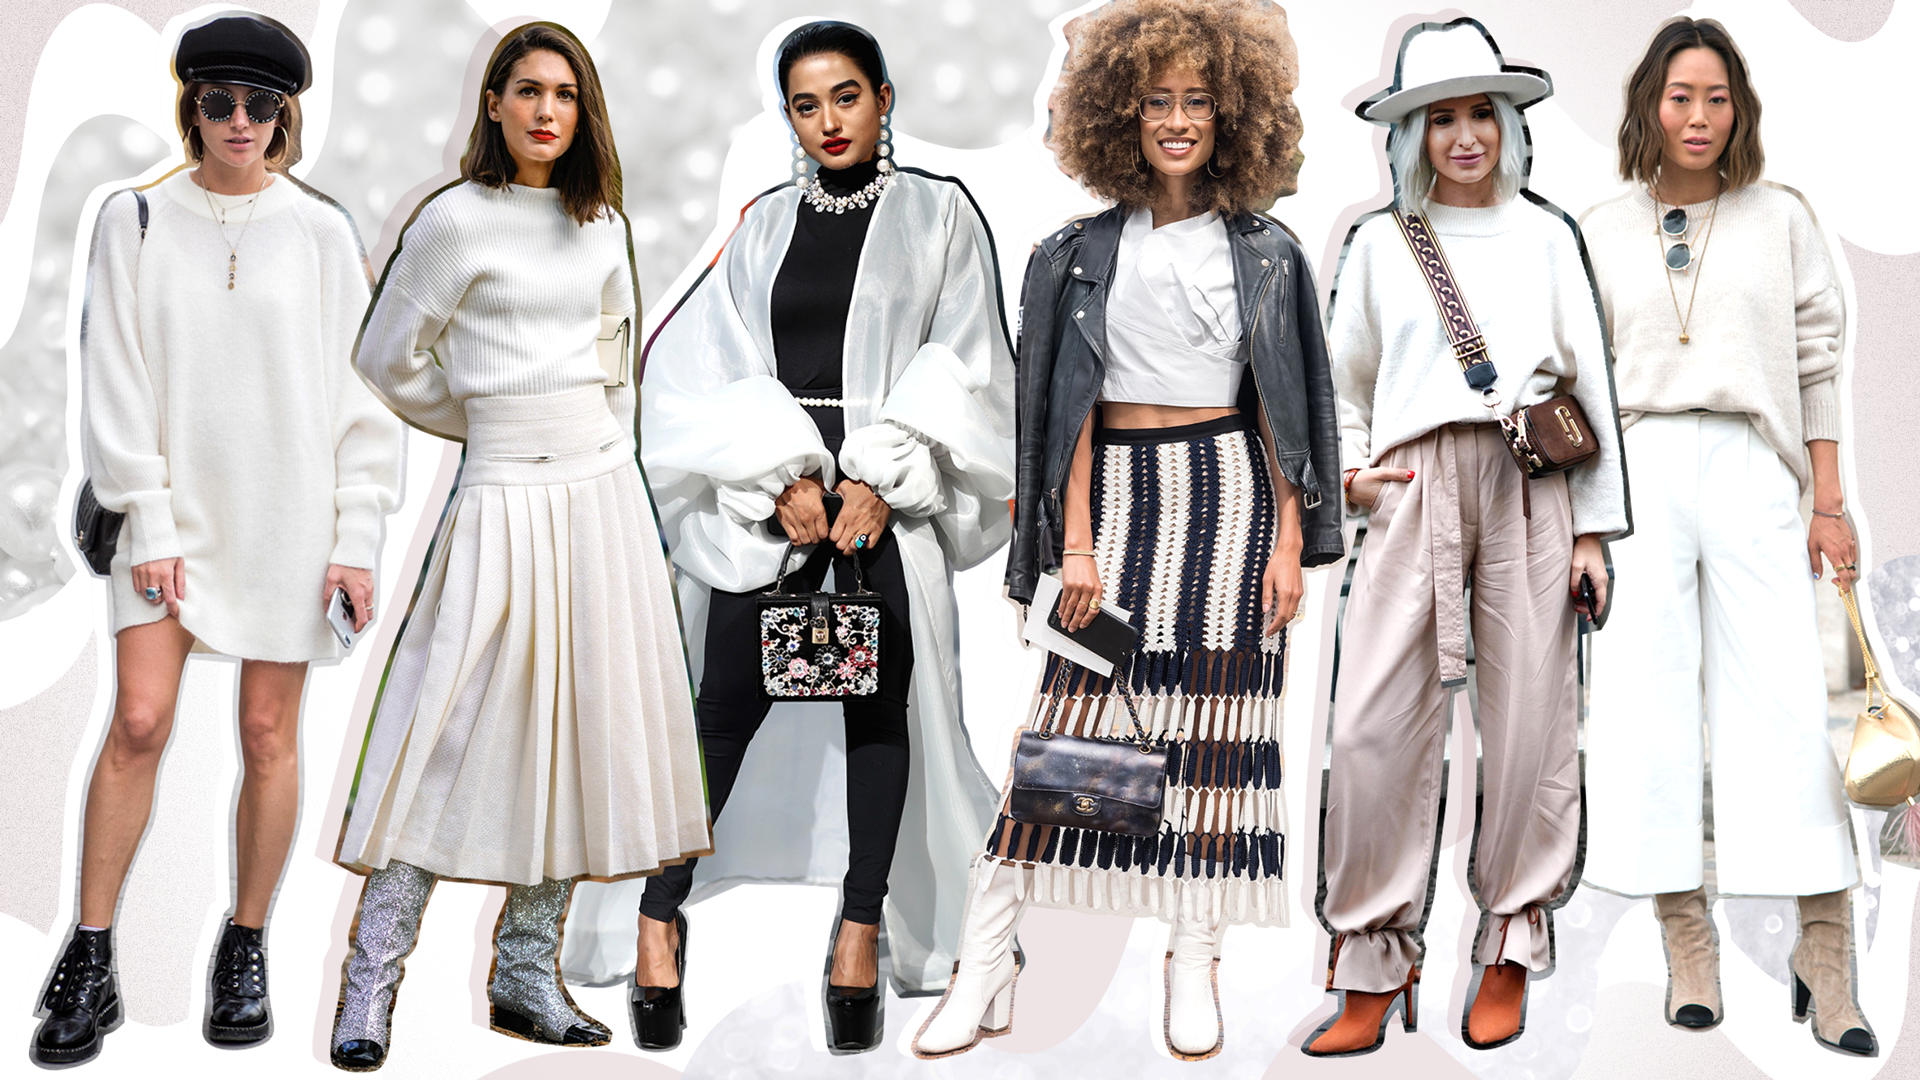 STYLECASTER | Winter Outfit Ideas | Winter White Styling Guide